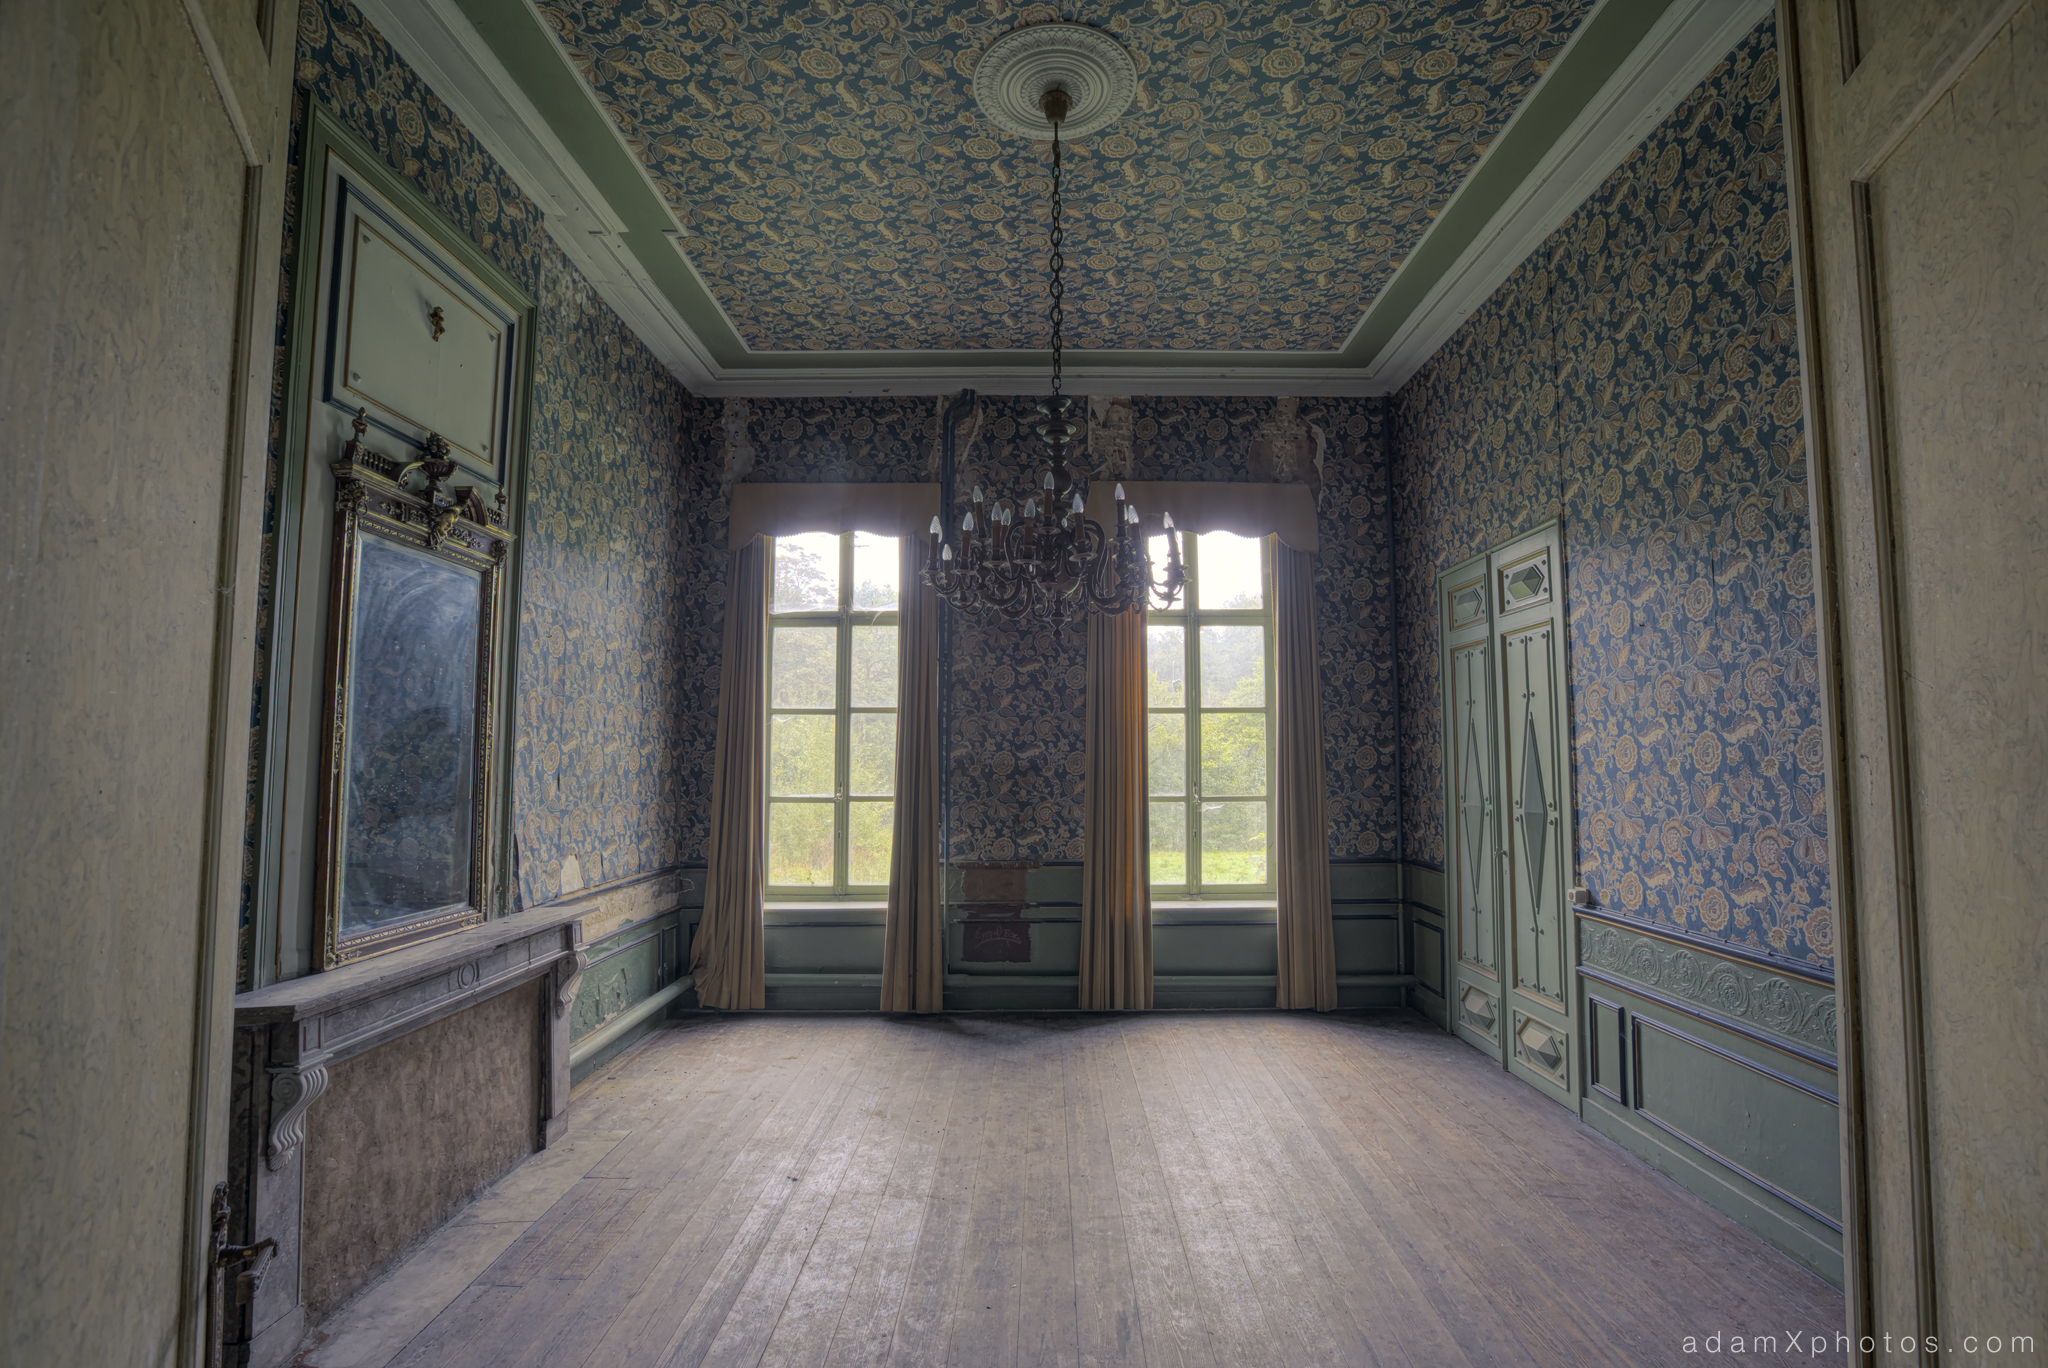 chateau de la chapelle belgium. Adam X Chateau De La Chapelle Urbex Urban Exploration Belgium Abandoned Room Mirror Wallpaper Grand E